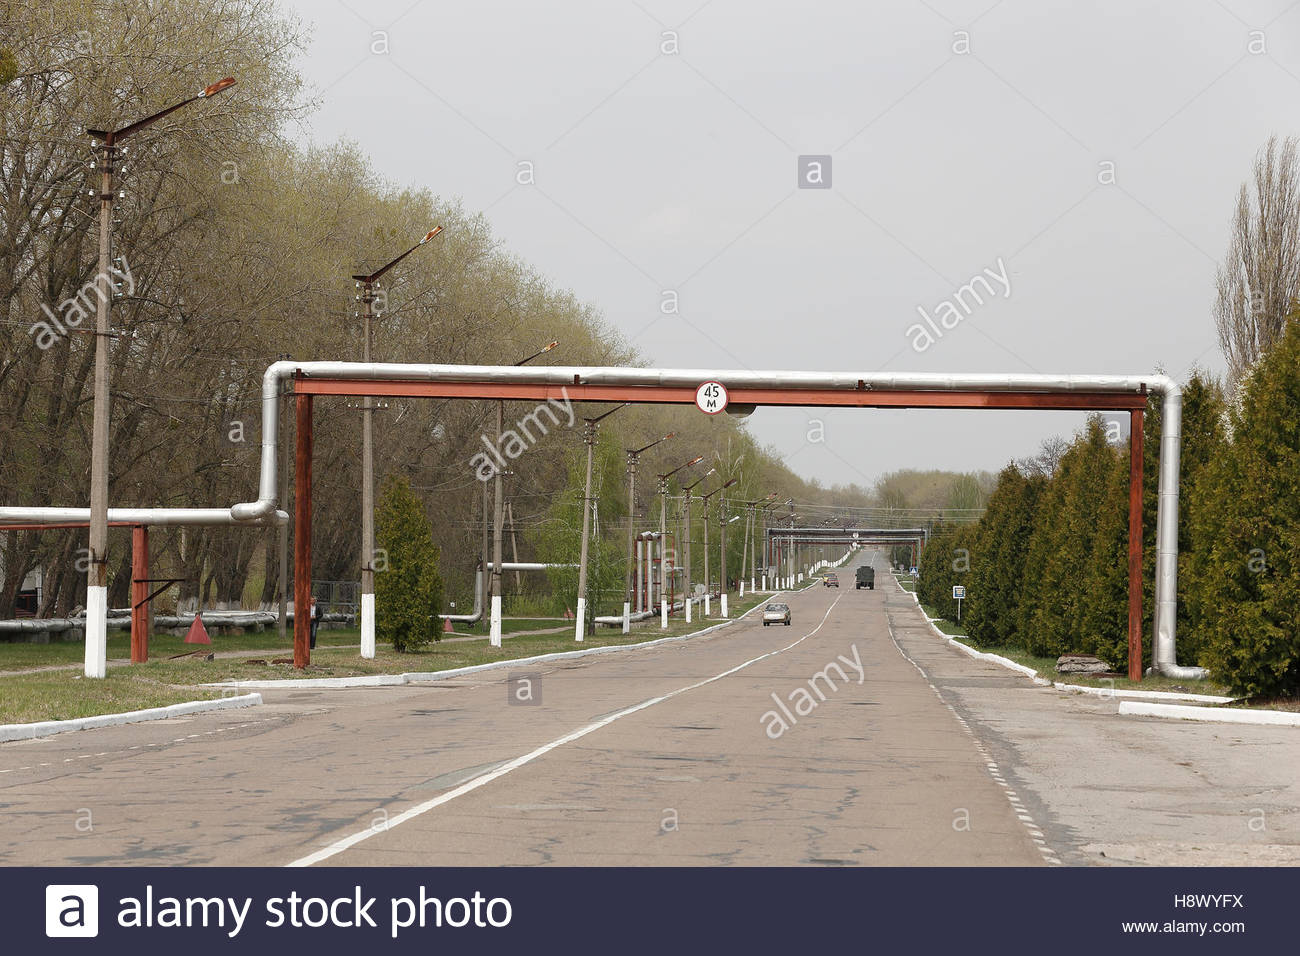 Main street of the city of Chernobyl - Ukraine - Stock Image